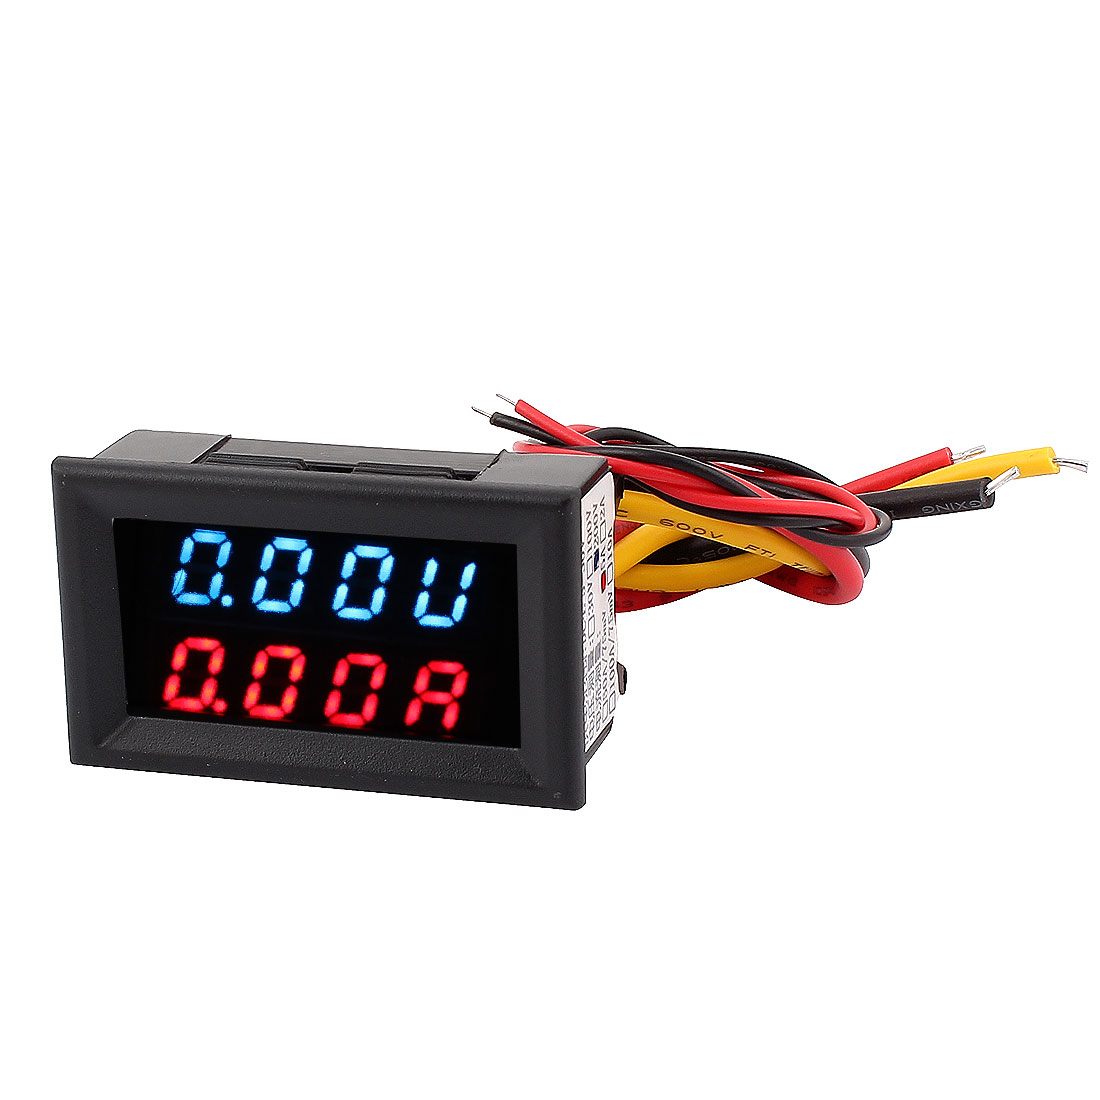 DC 0-200V 0-5A Dual LED Digital Battery Charger Tester Voltmeter Ammeter